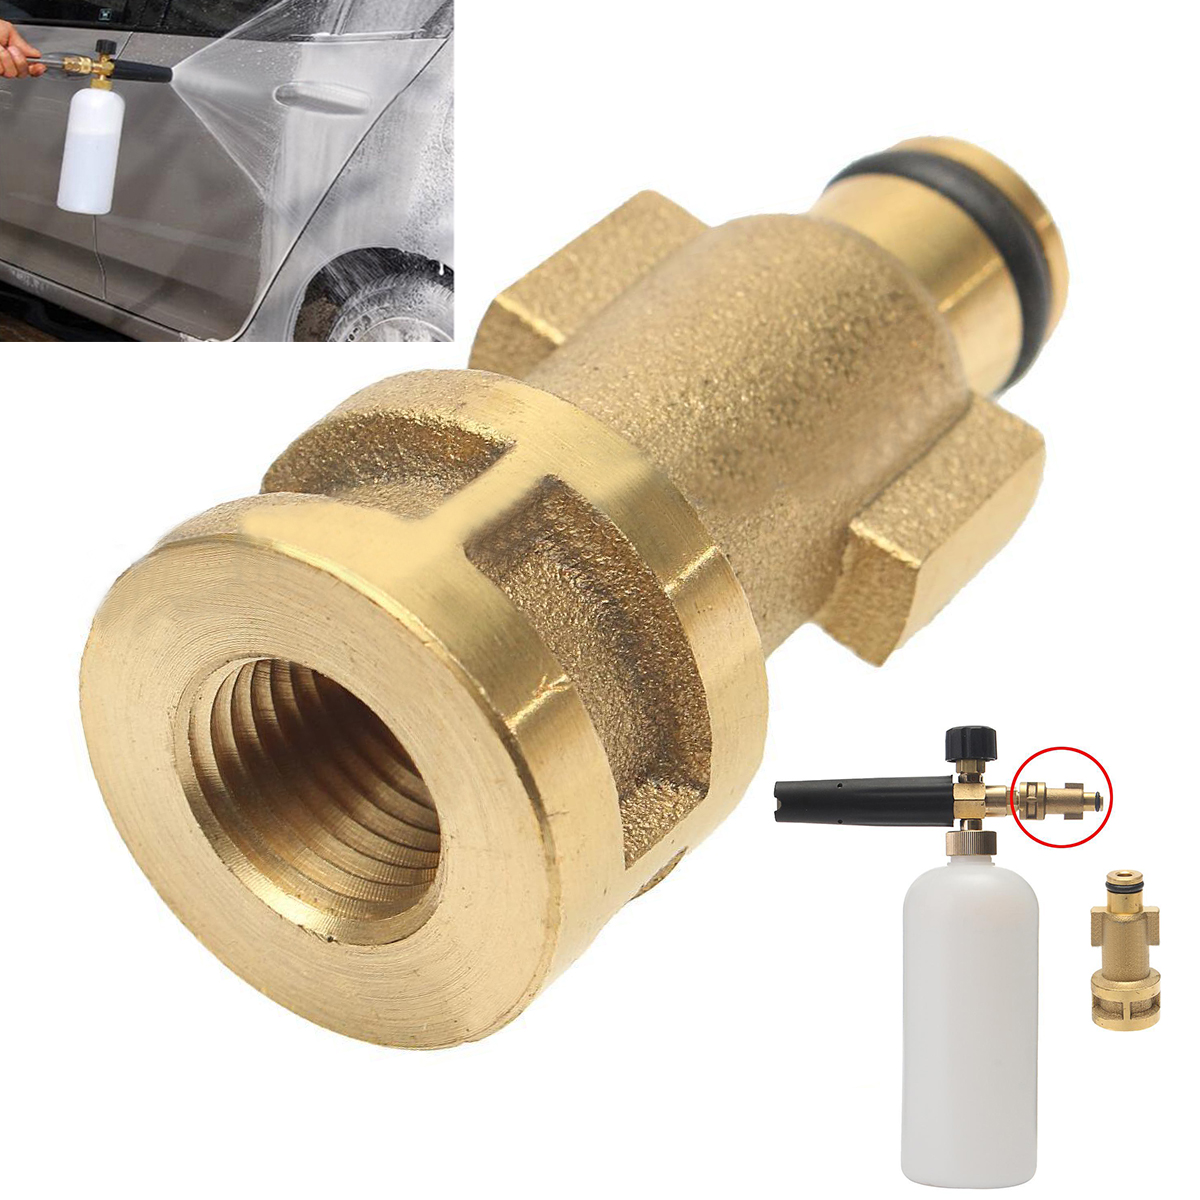 1/4 Inch Brass Car Pressure Washer Foam Lance Adapter Connector For Lavor Parts Business, Office & Industrial